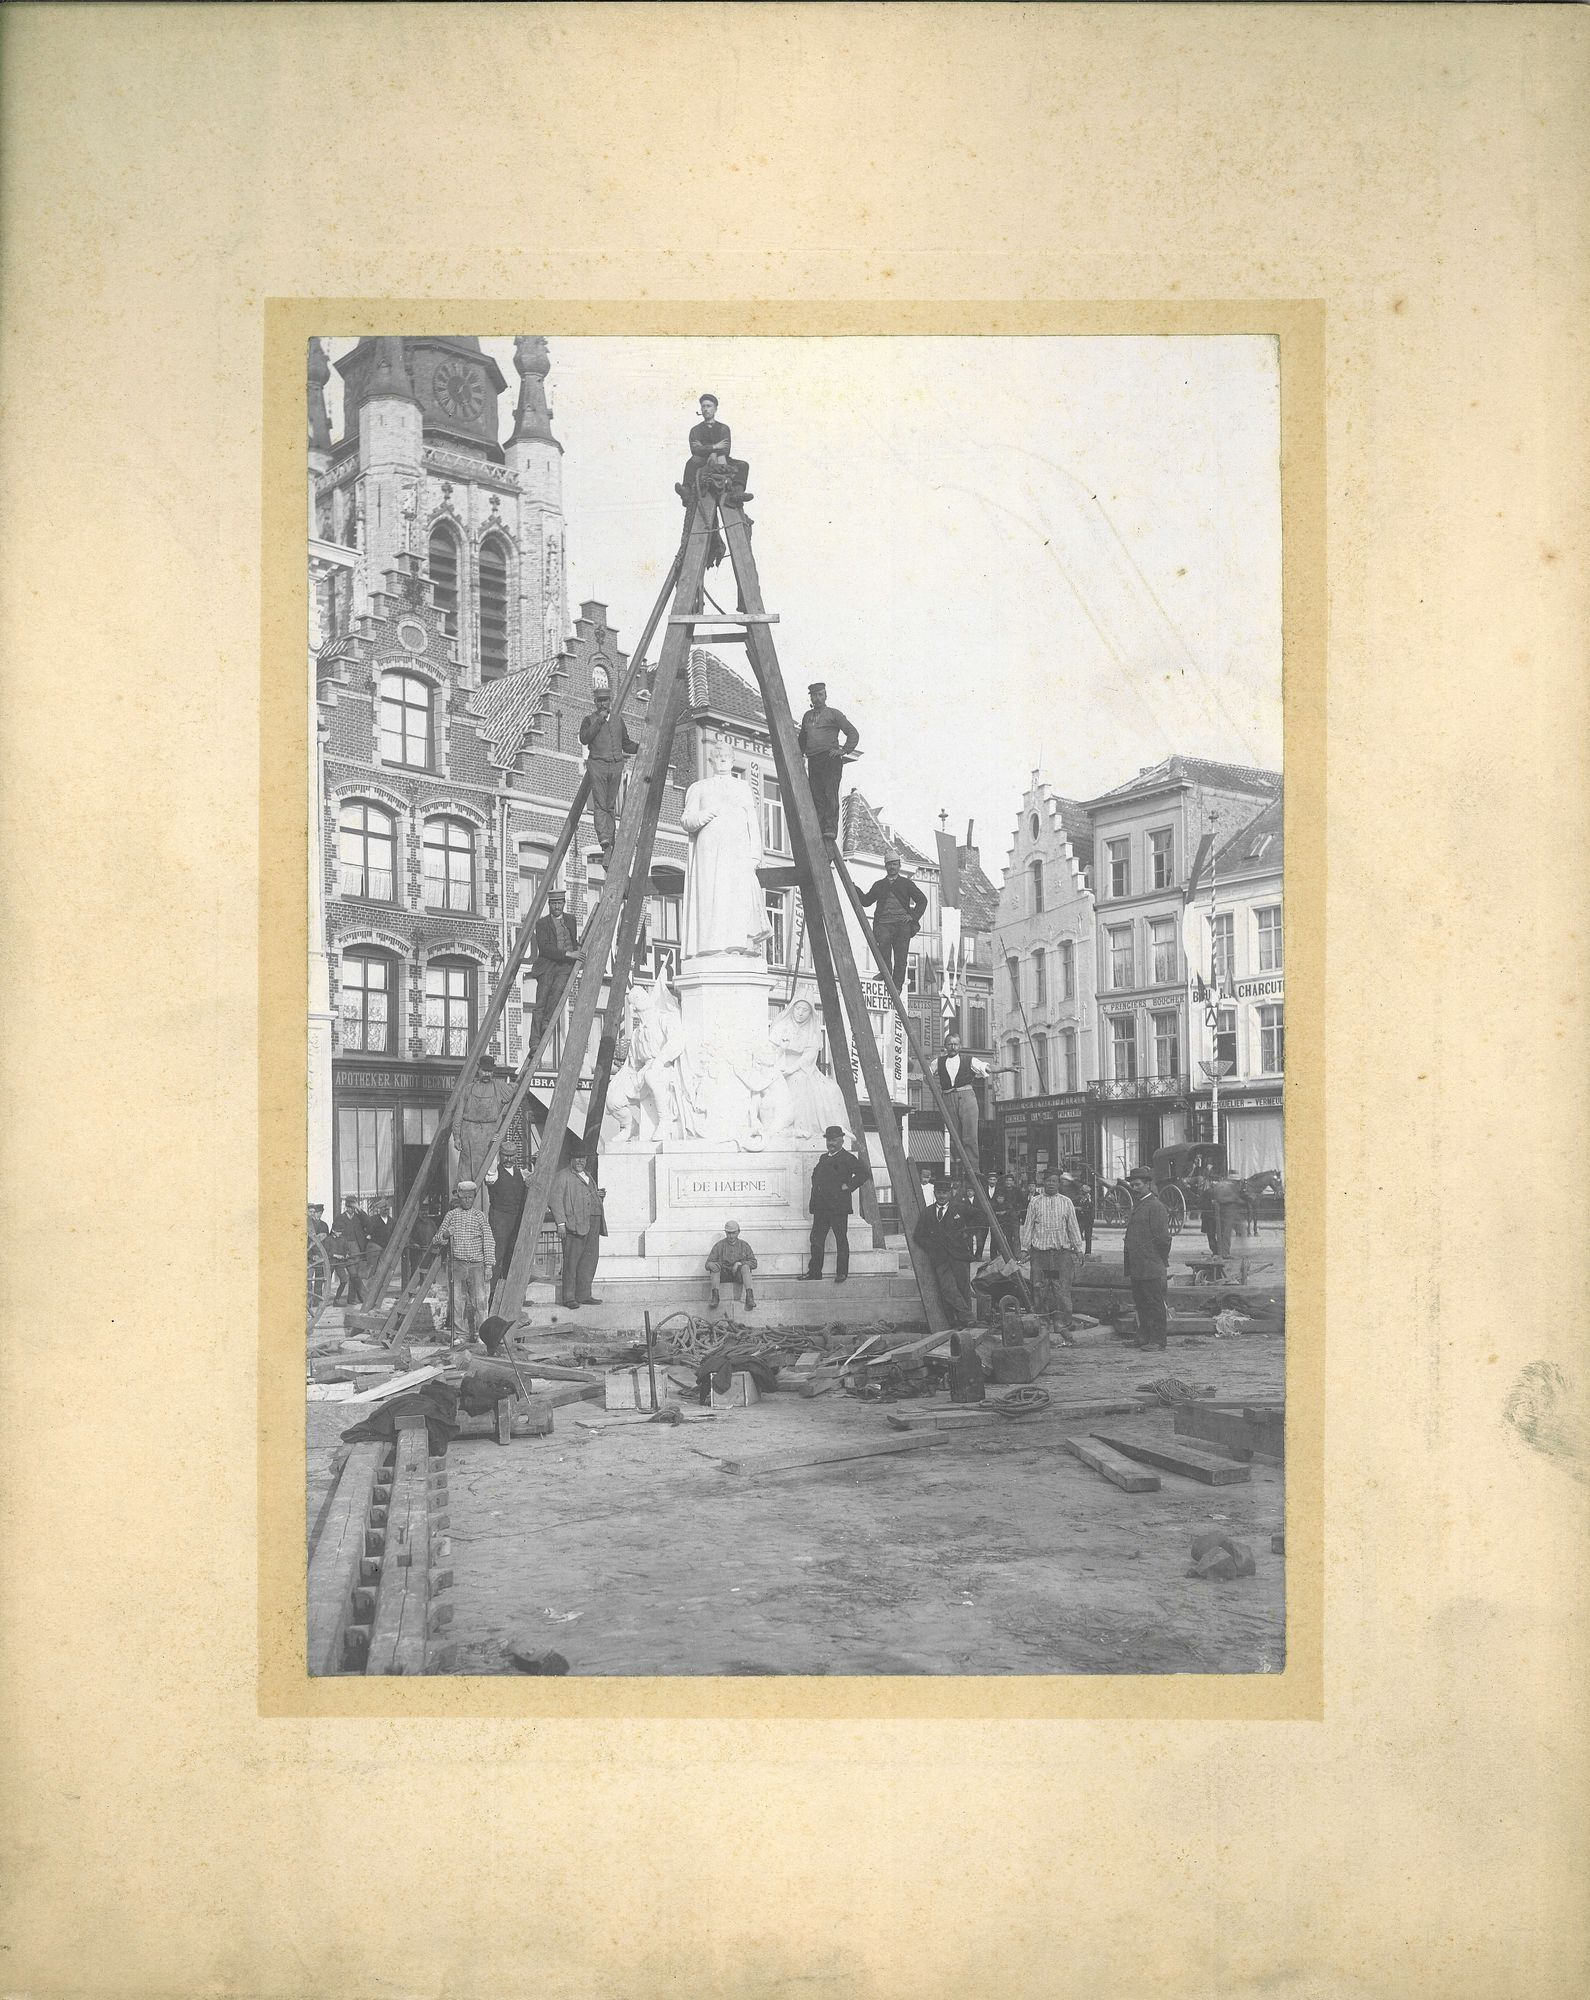 Inhuldiging monument de Haerne in 1895